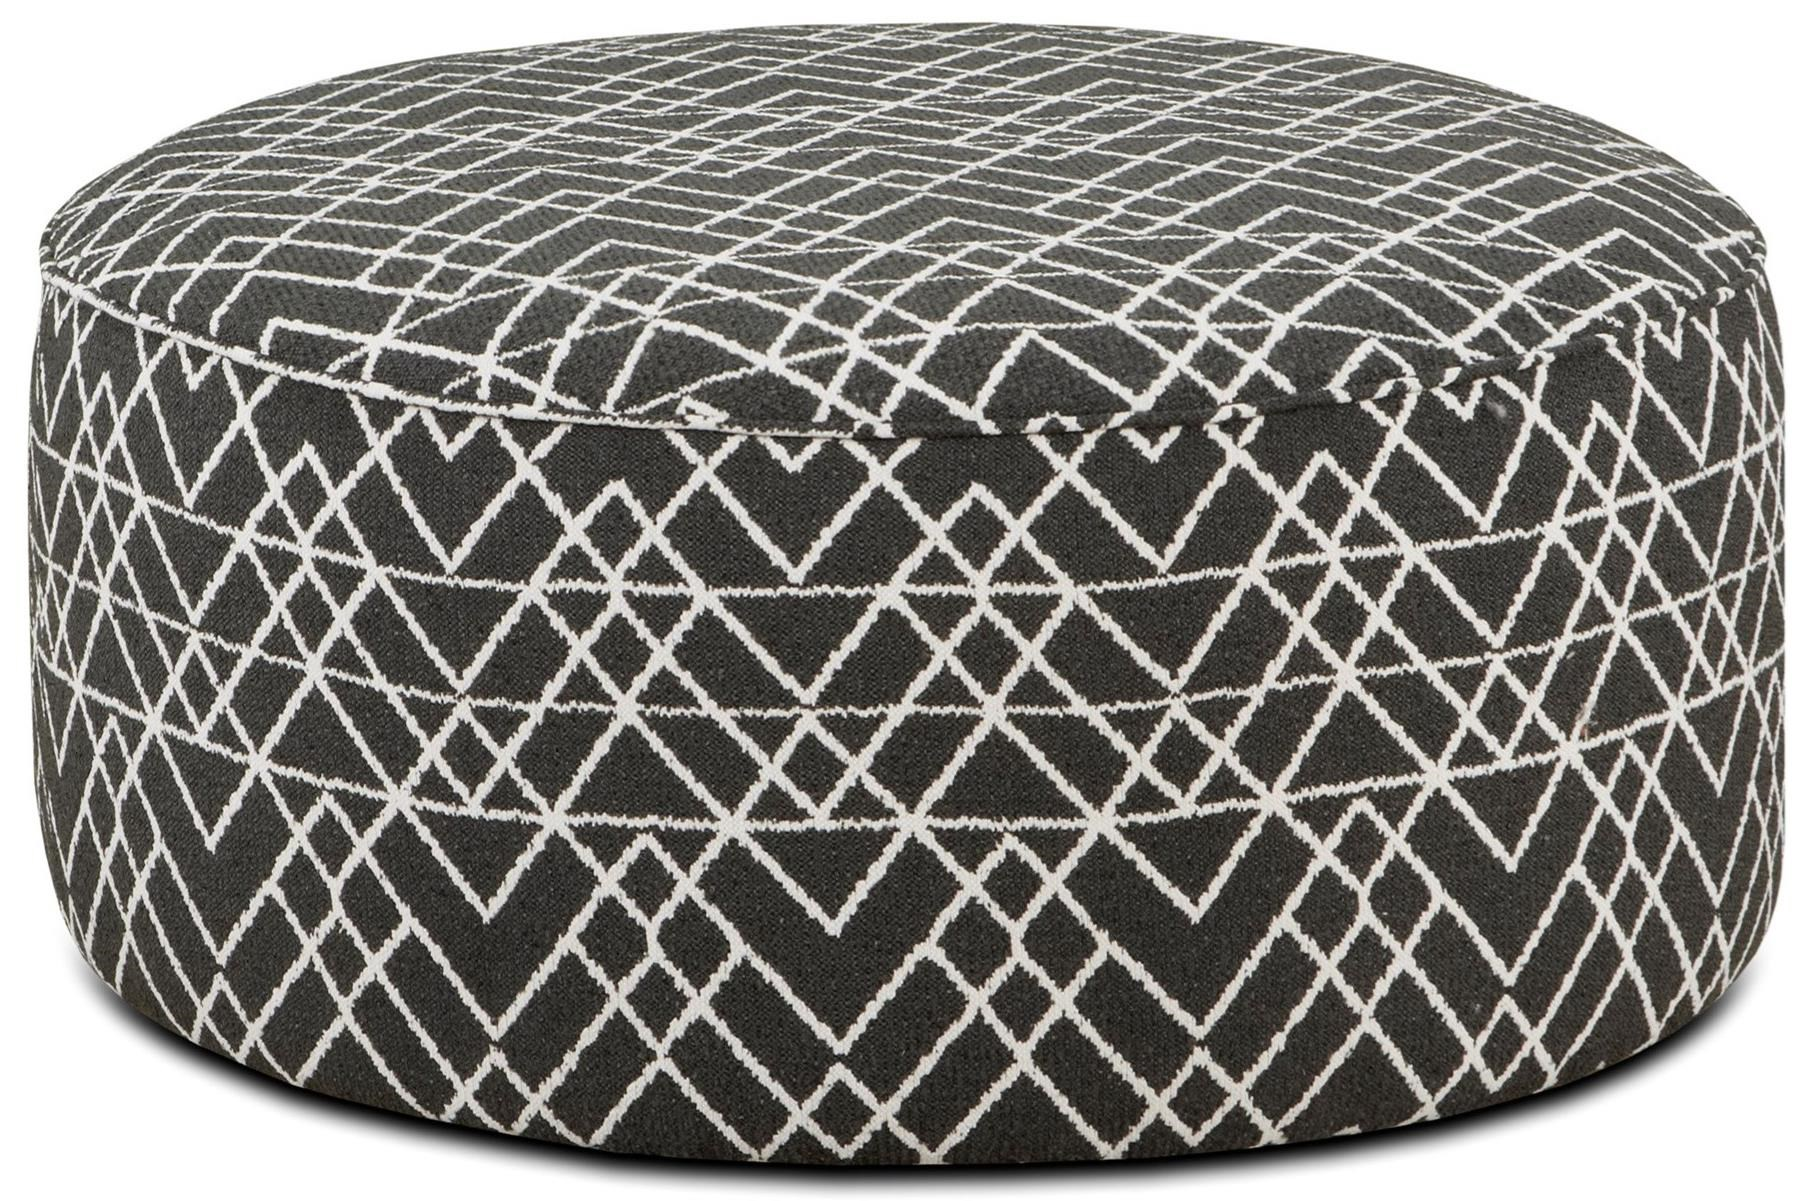 VFM Signature 140 Cocktail Ottoman - Item Number: 140Hyphen Onyx